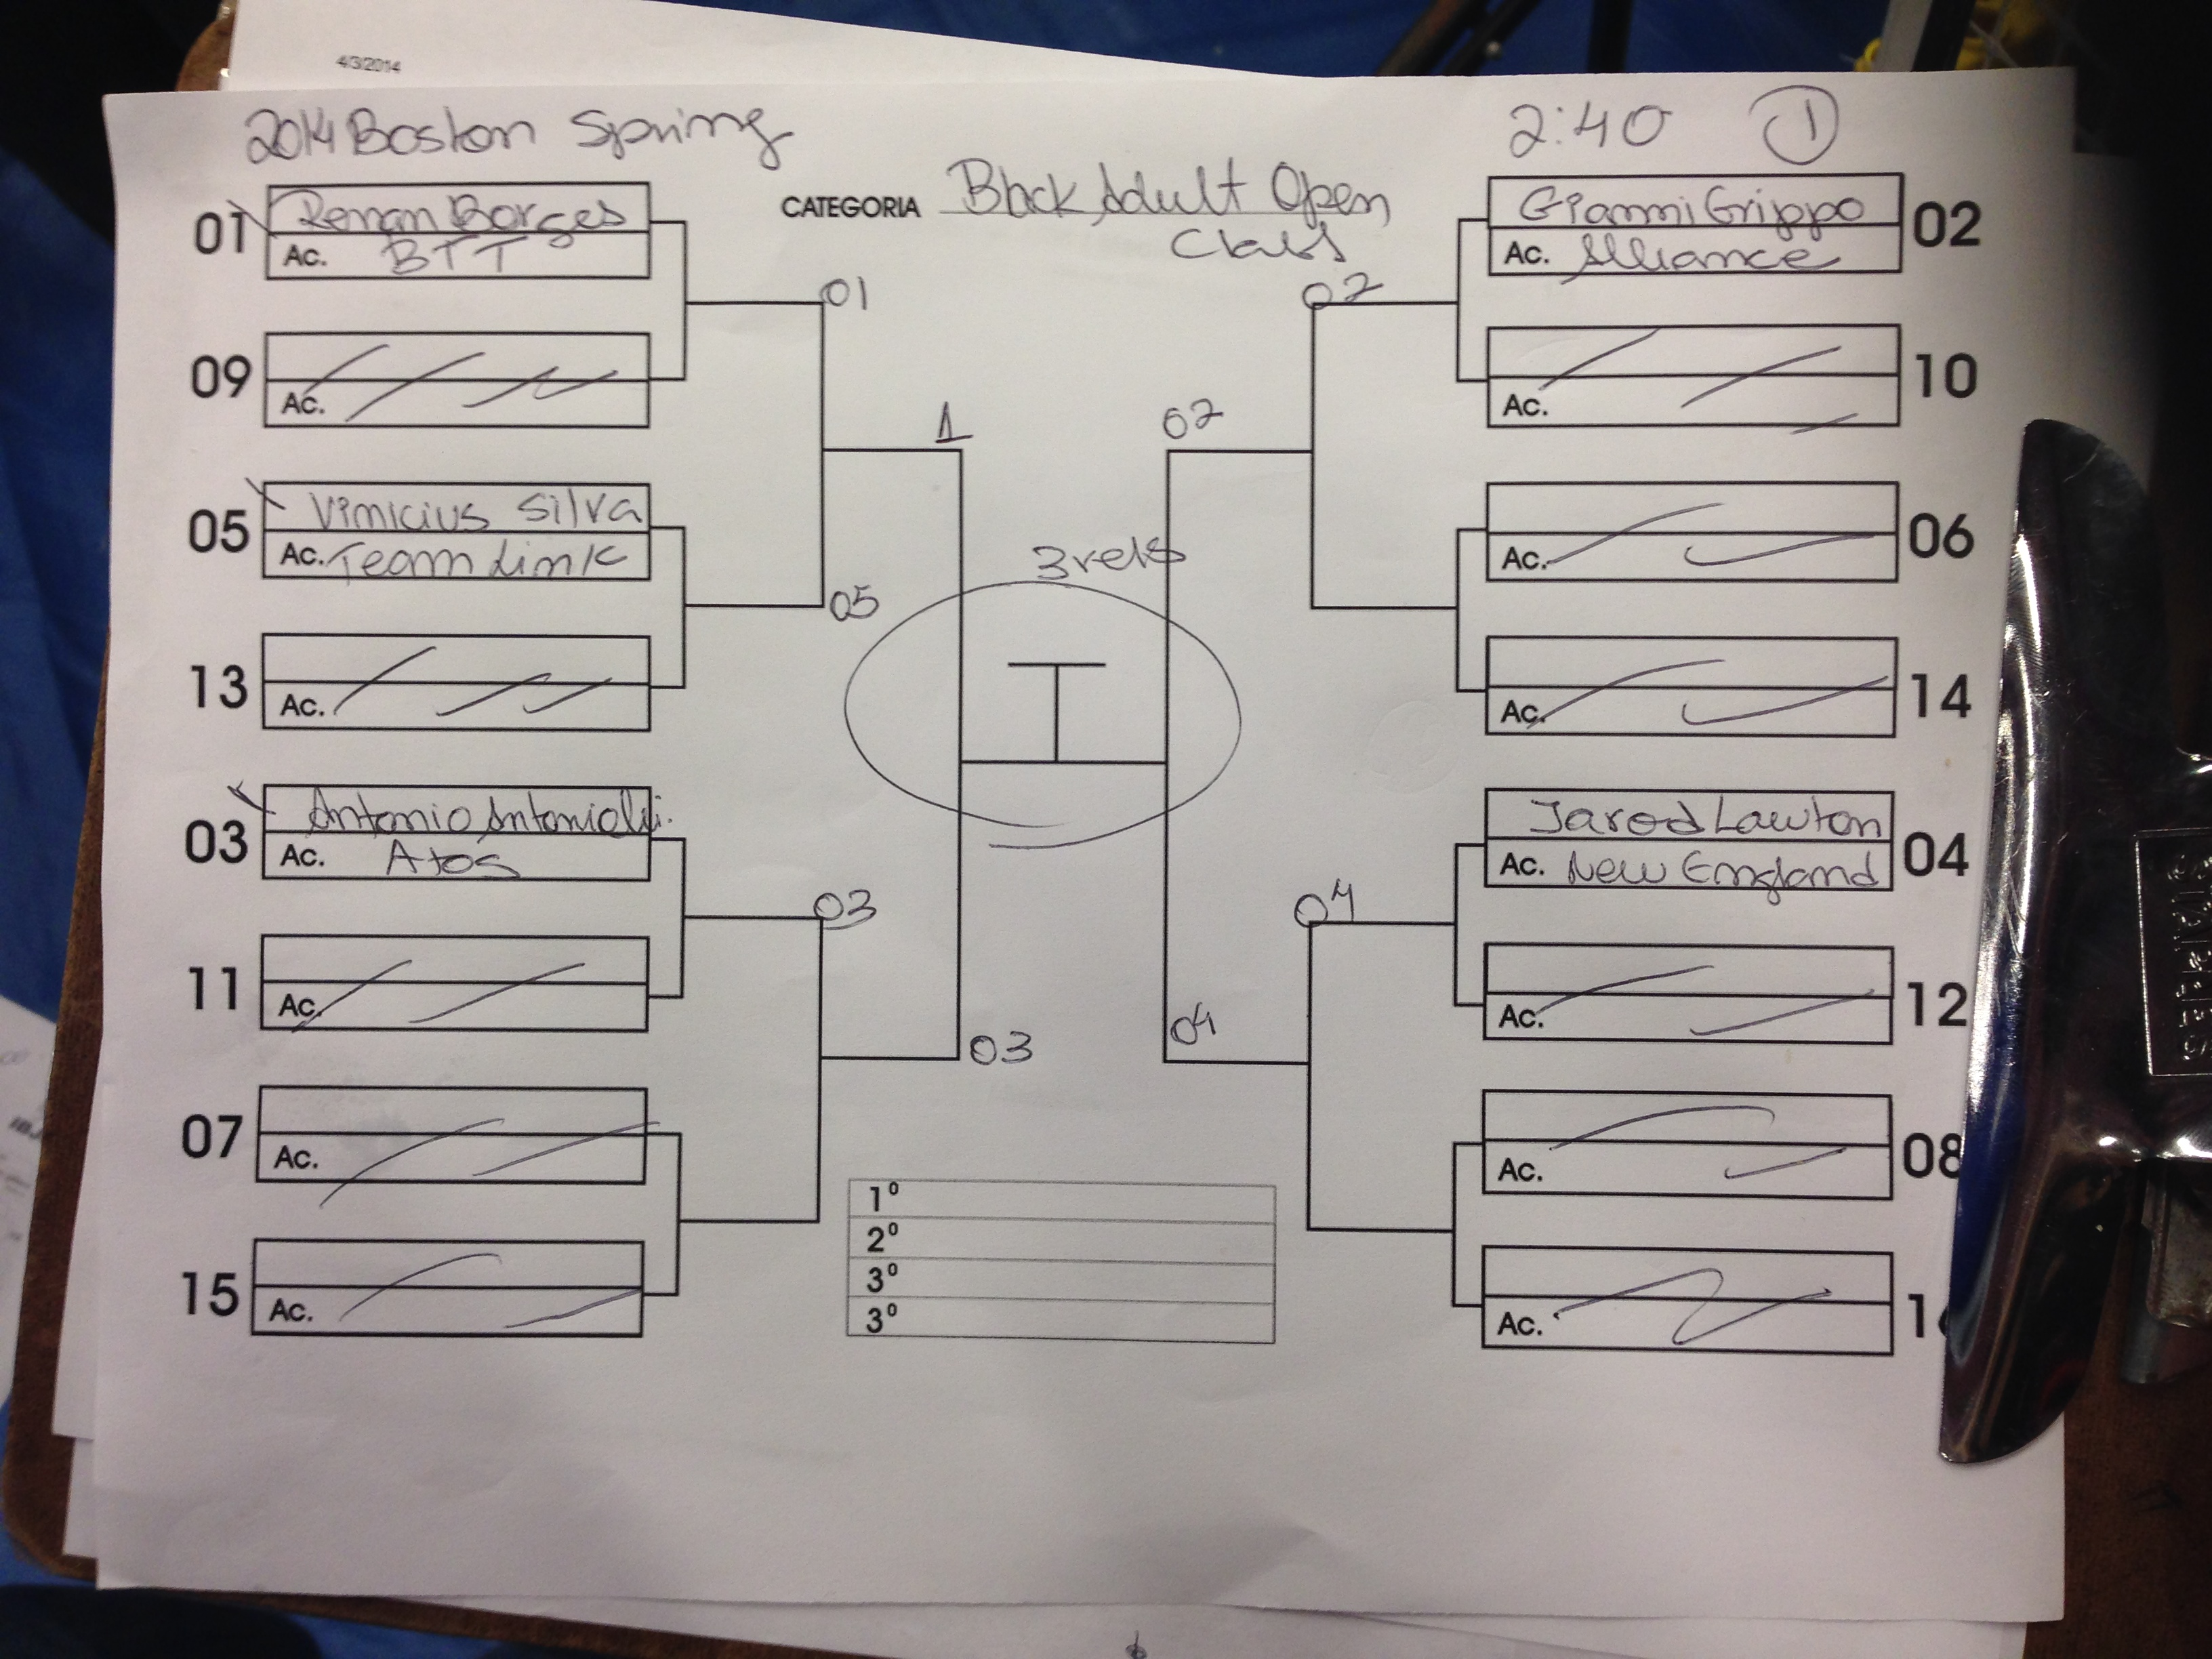 Here is the drawn up bracket for the black belt open weight